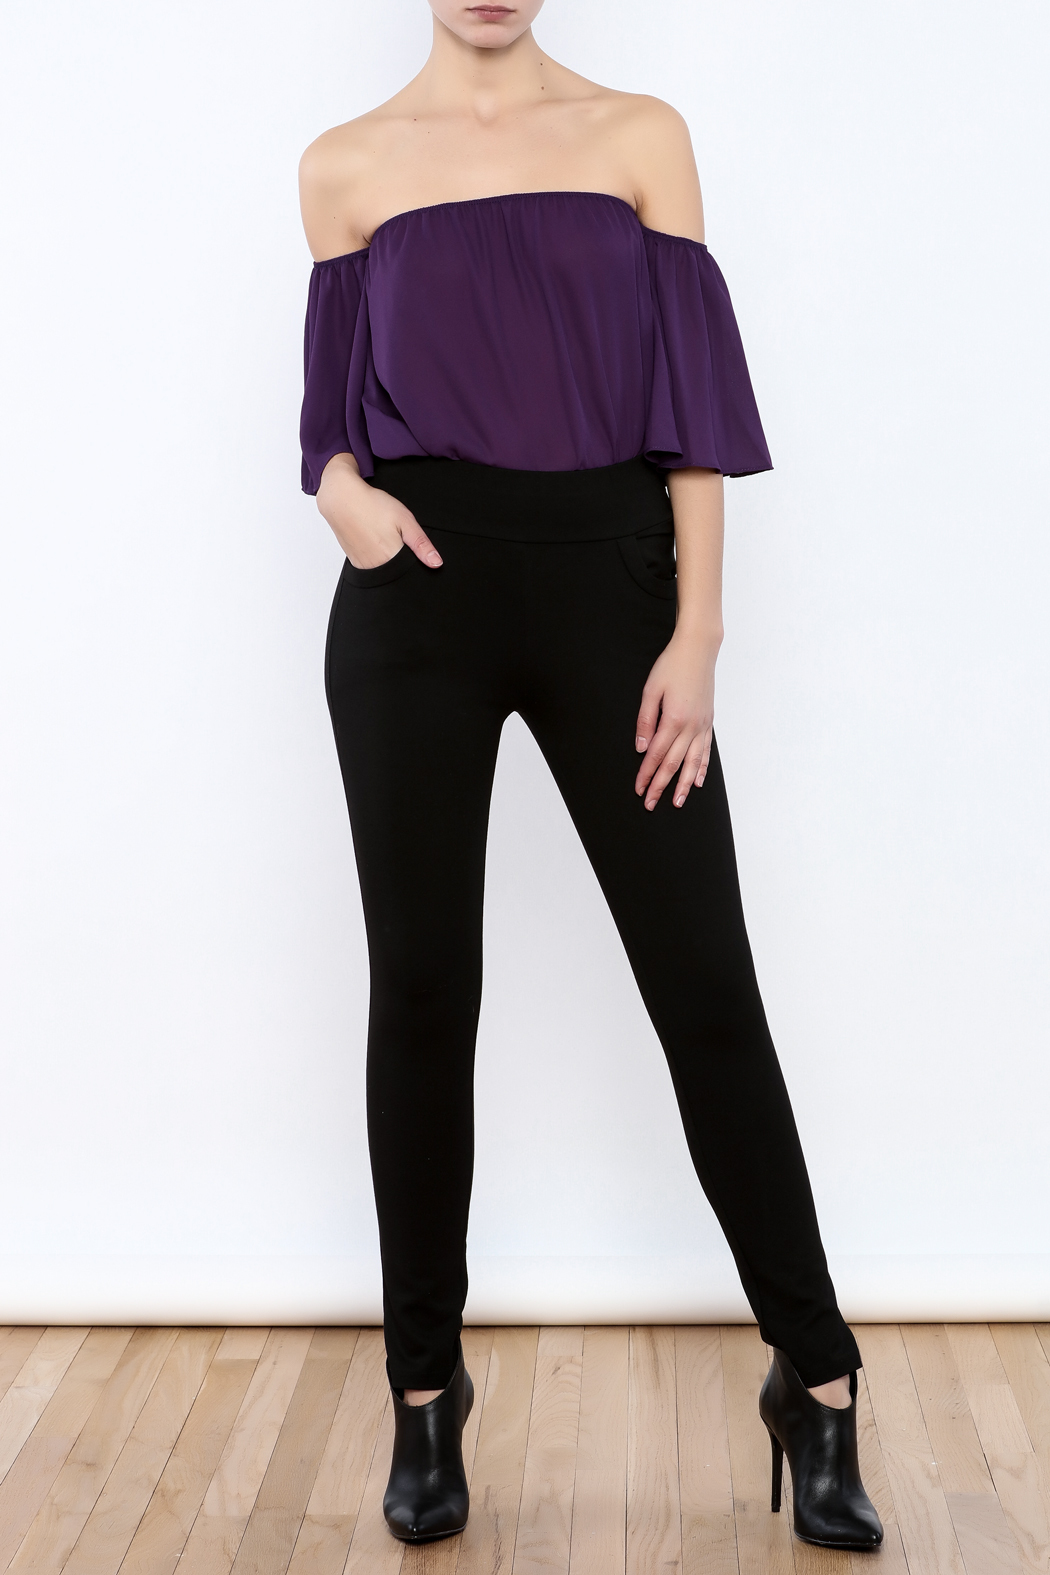 Gracia Black Stretchable Pants - Front Full Image